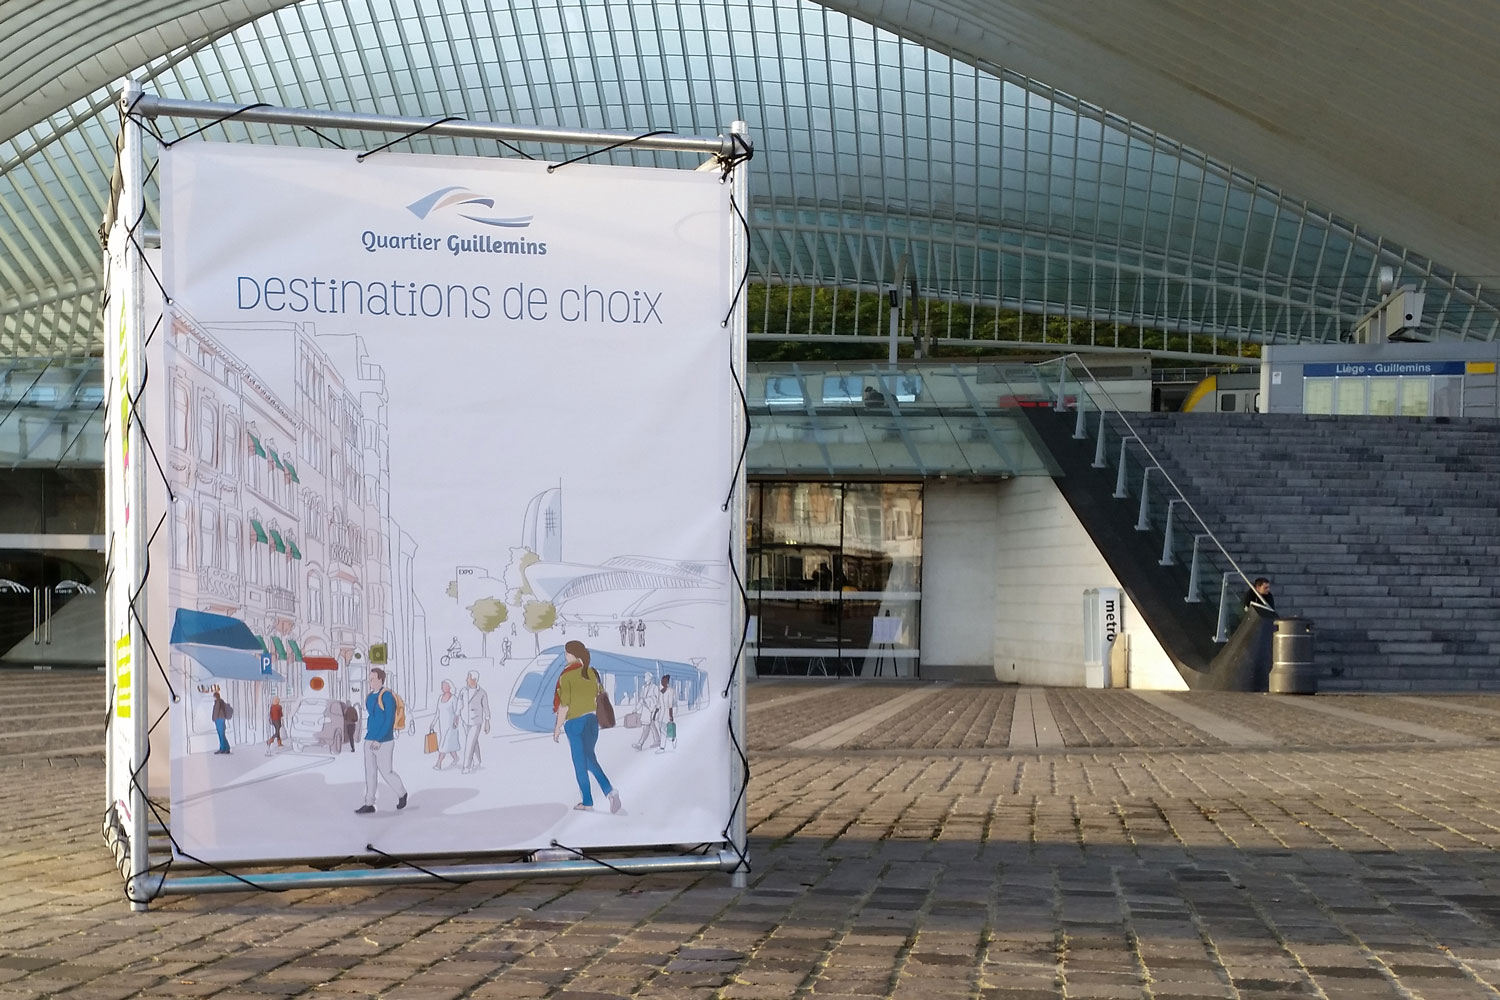 3_crabgraphic_Liege_Quartiers2014_Guillemins_sit